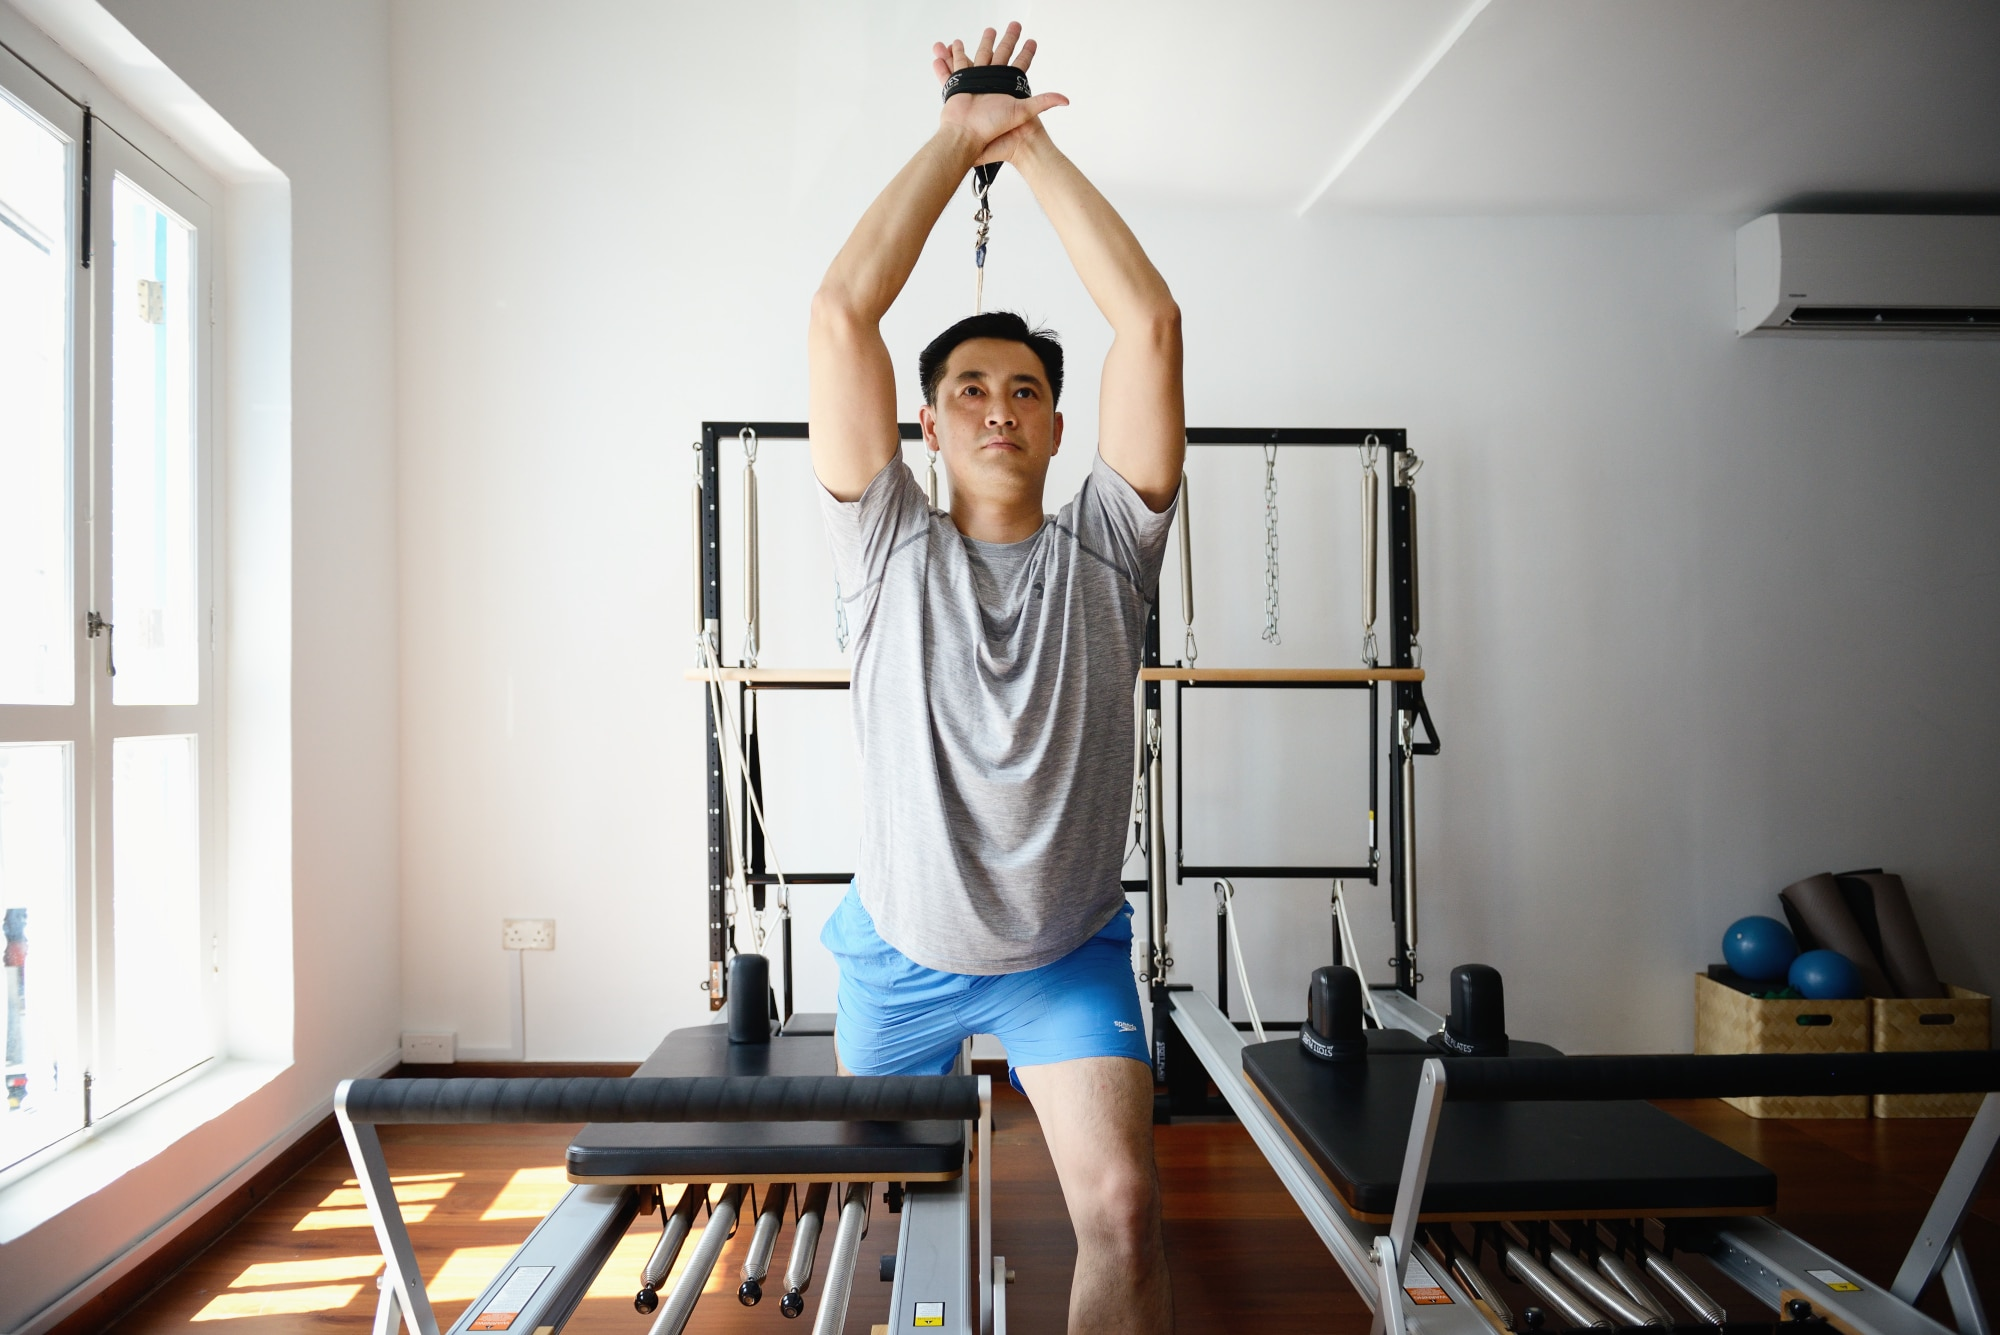 Image of a man doing Pilates with equipment - Pilates Products & Services